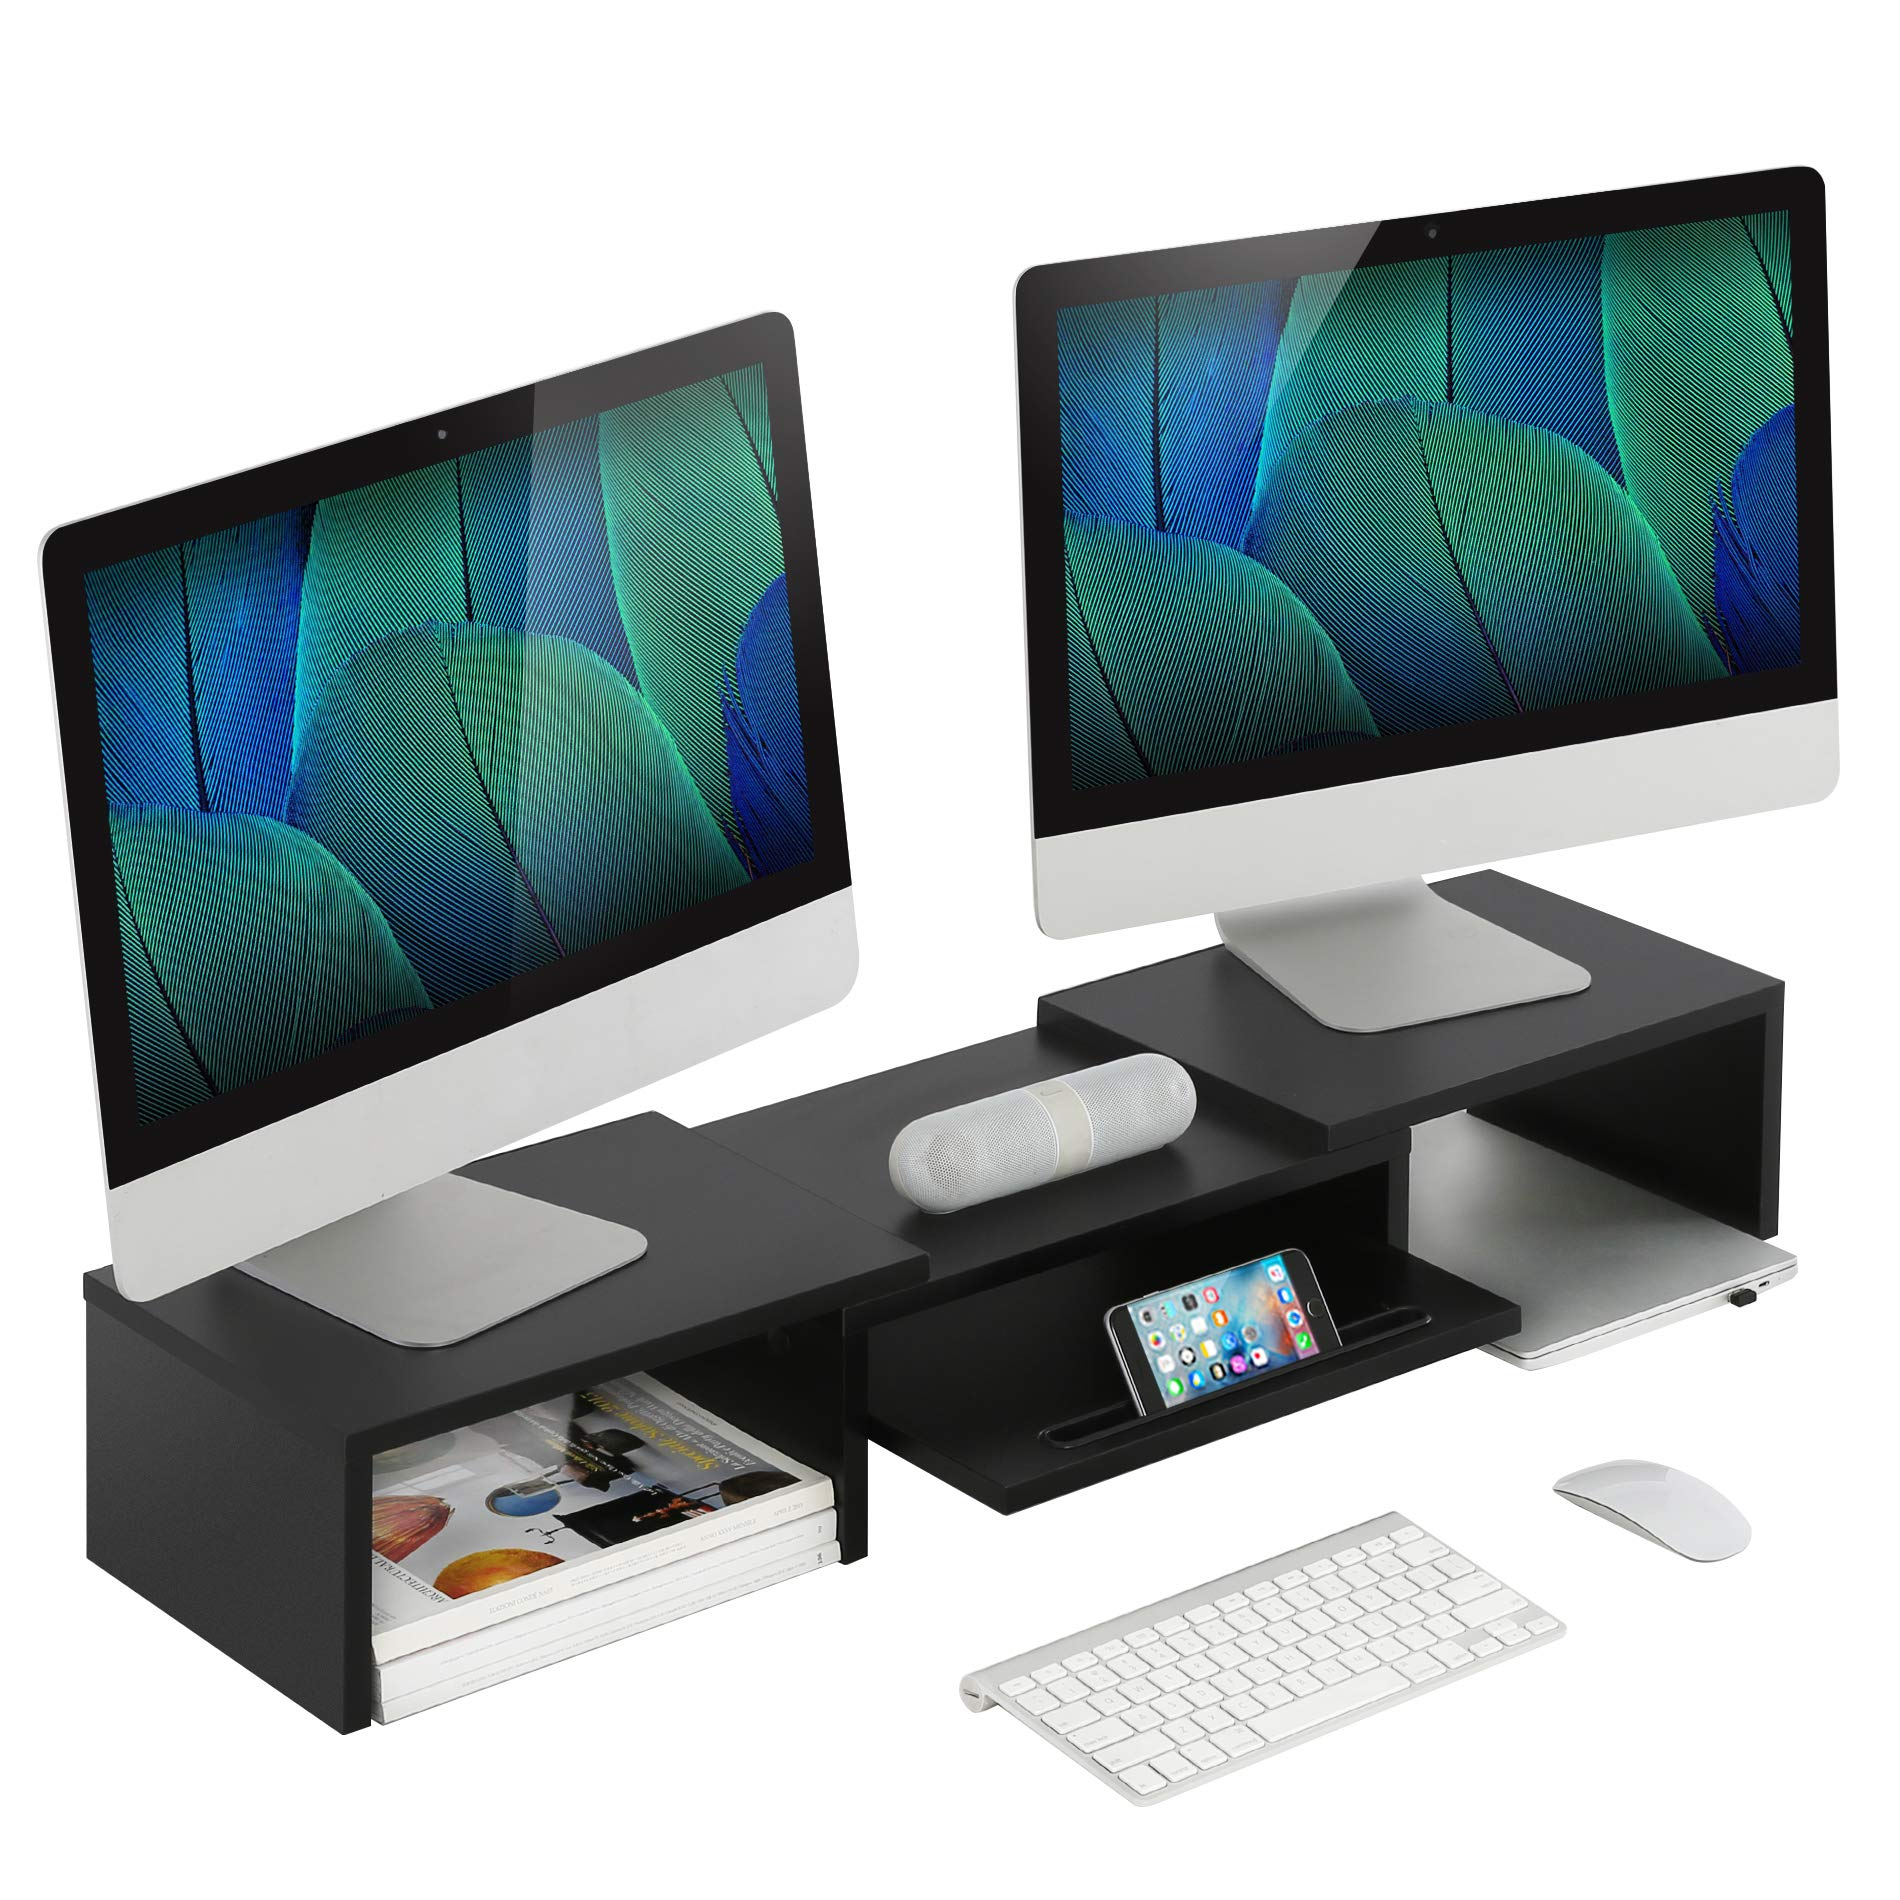 Adjustable Wood Dual Monitor Stand Riser with Pull Out Storage Drawer, 2 Tier Monitor Riser for Computers, Laptops, Printers,Desk Organizer,Black by Homury